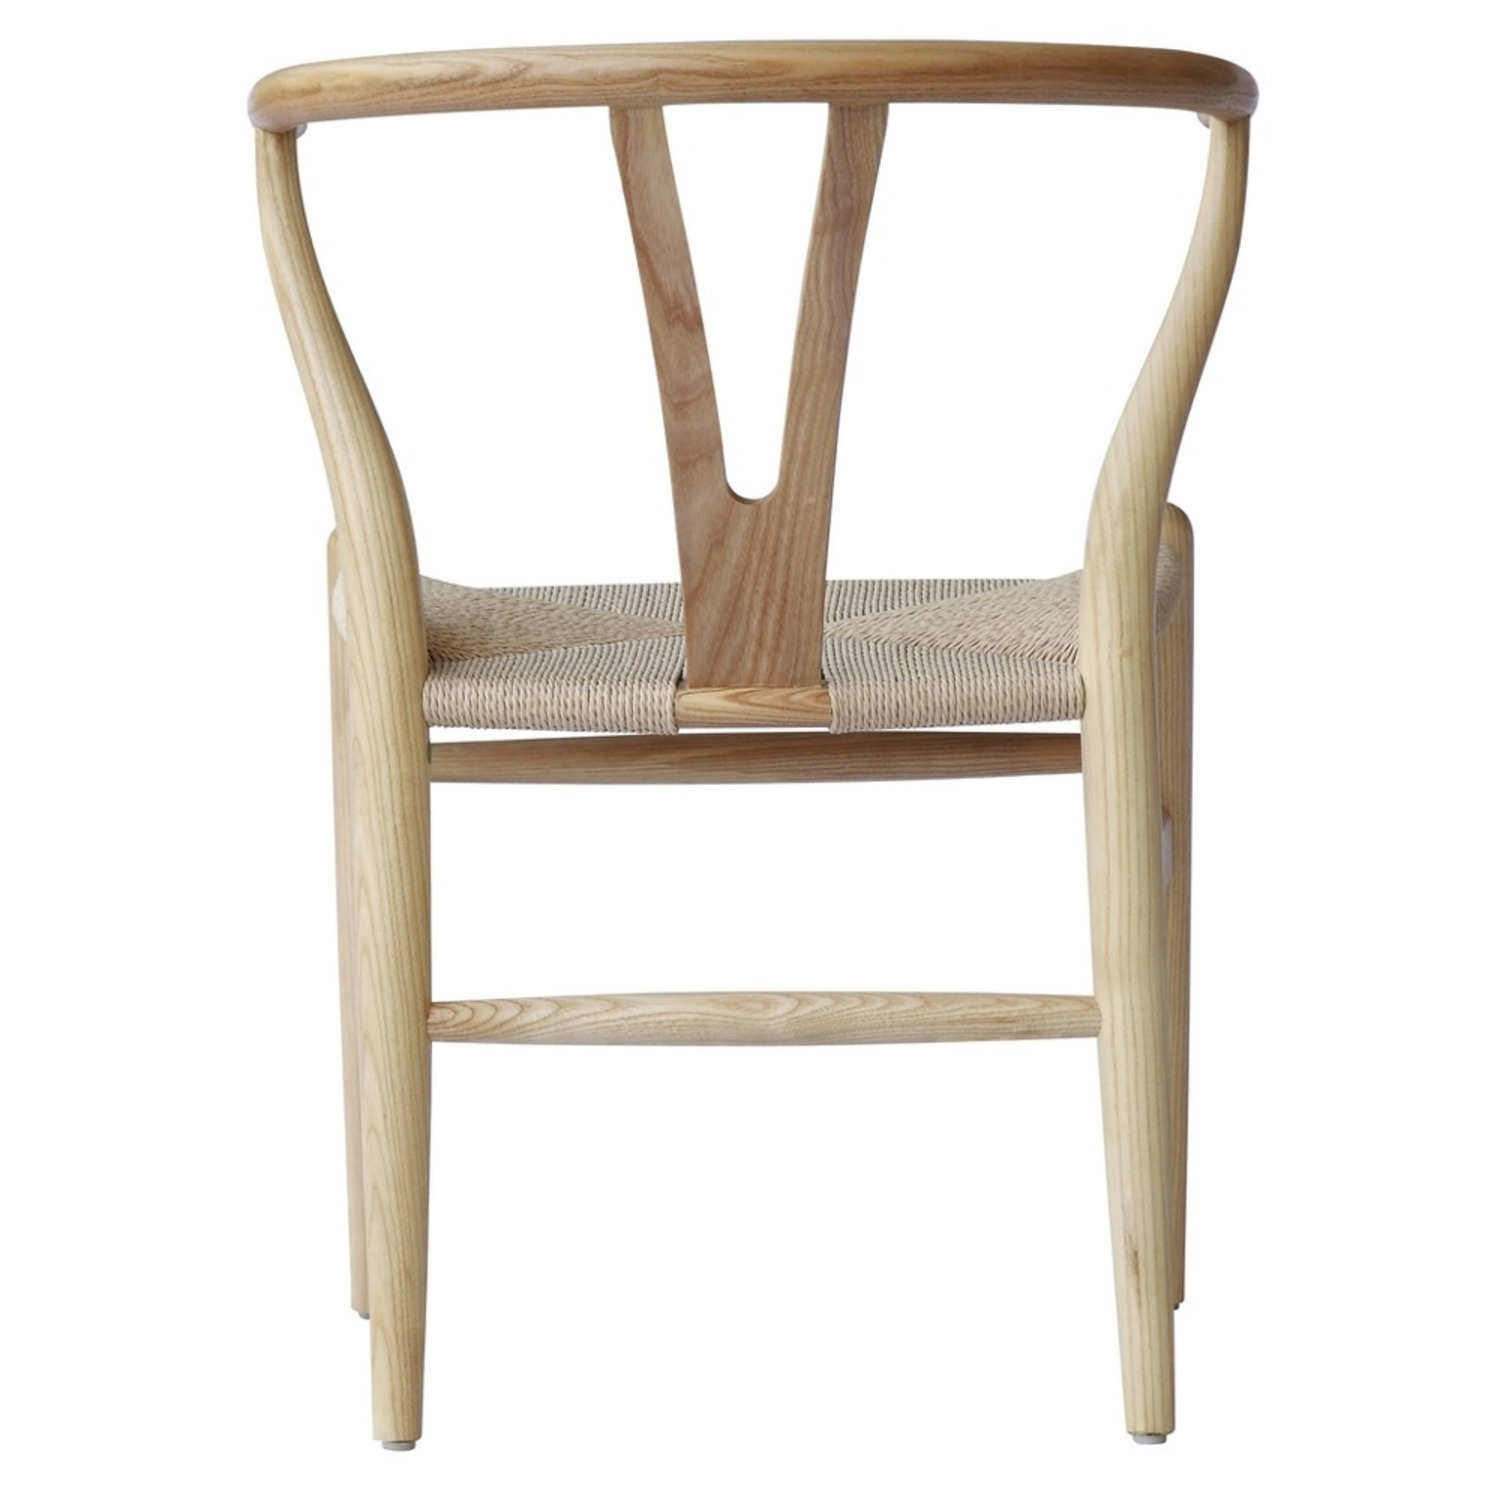 Dining Chair In Natural Frame & Natural Hemp Seat - image-2